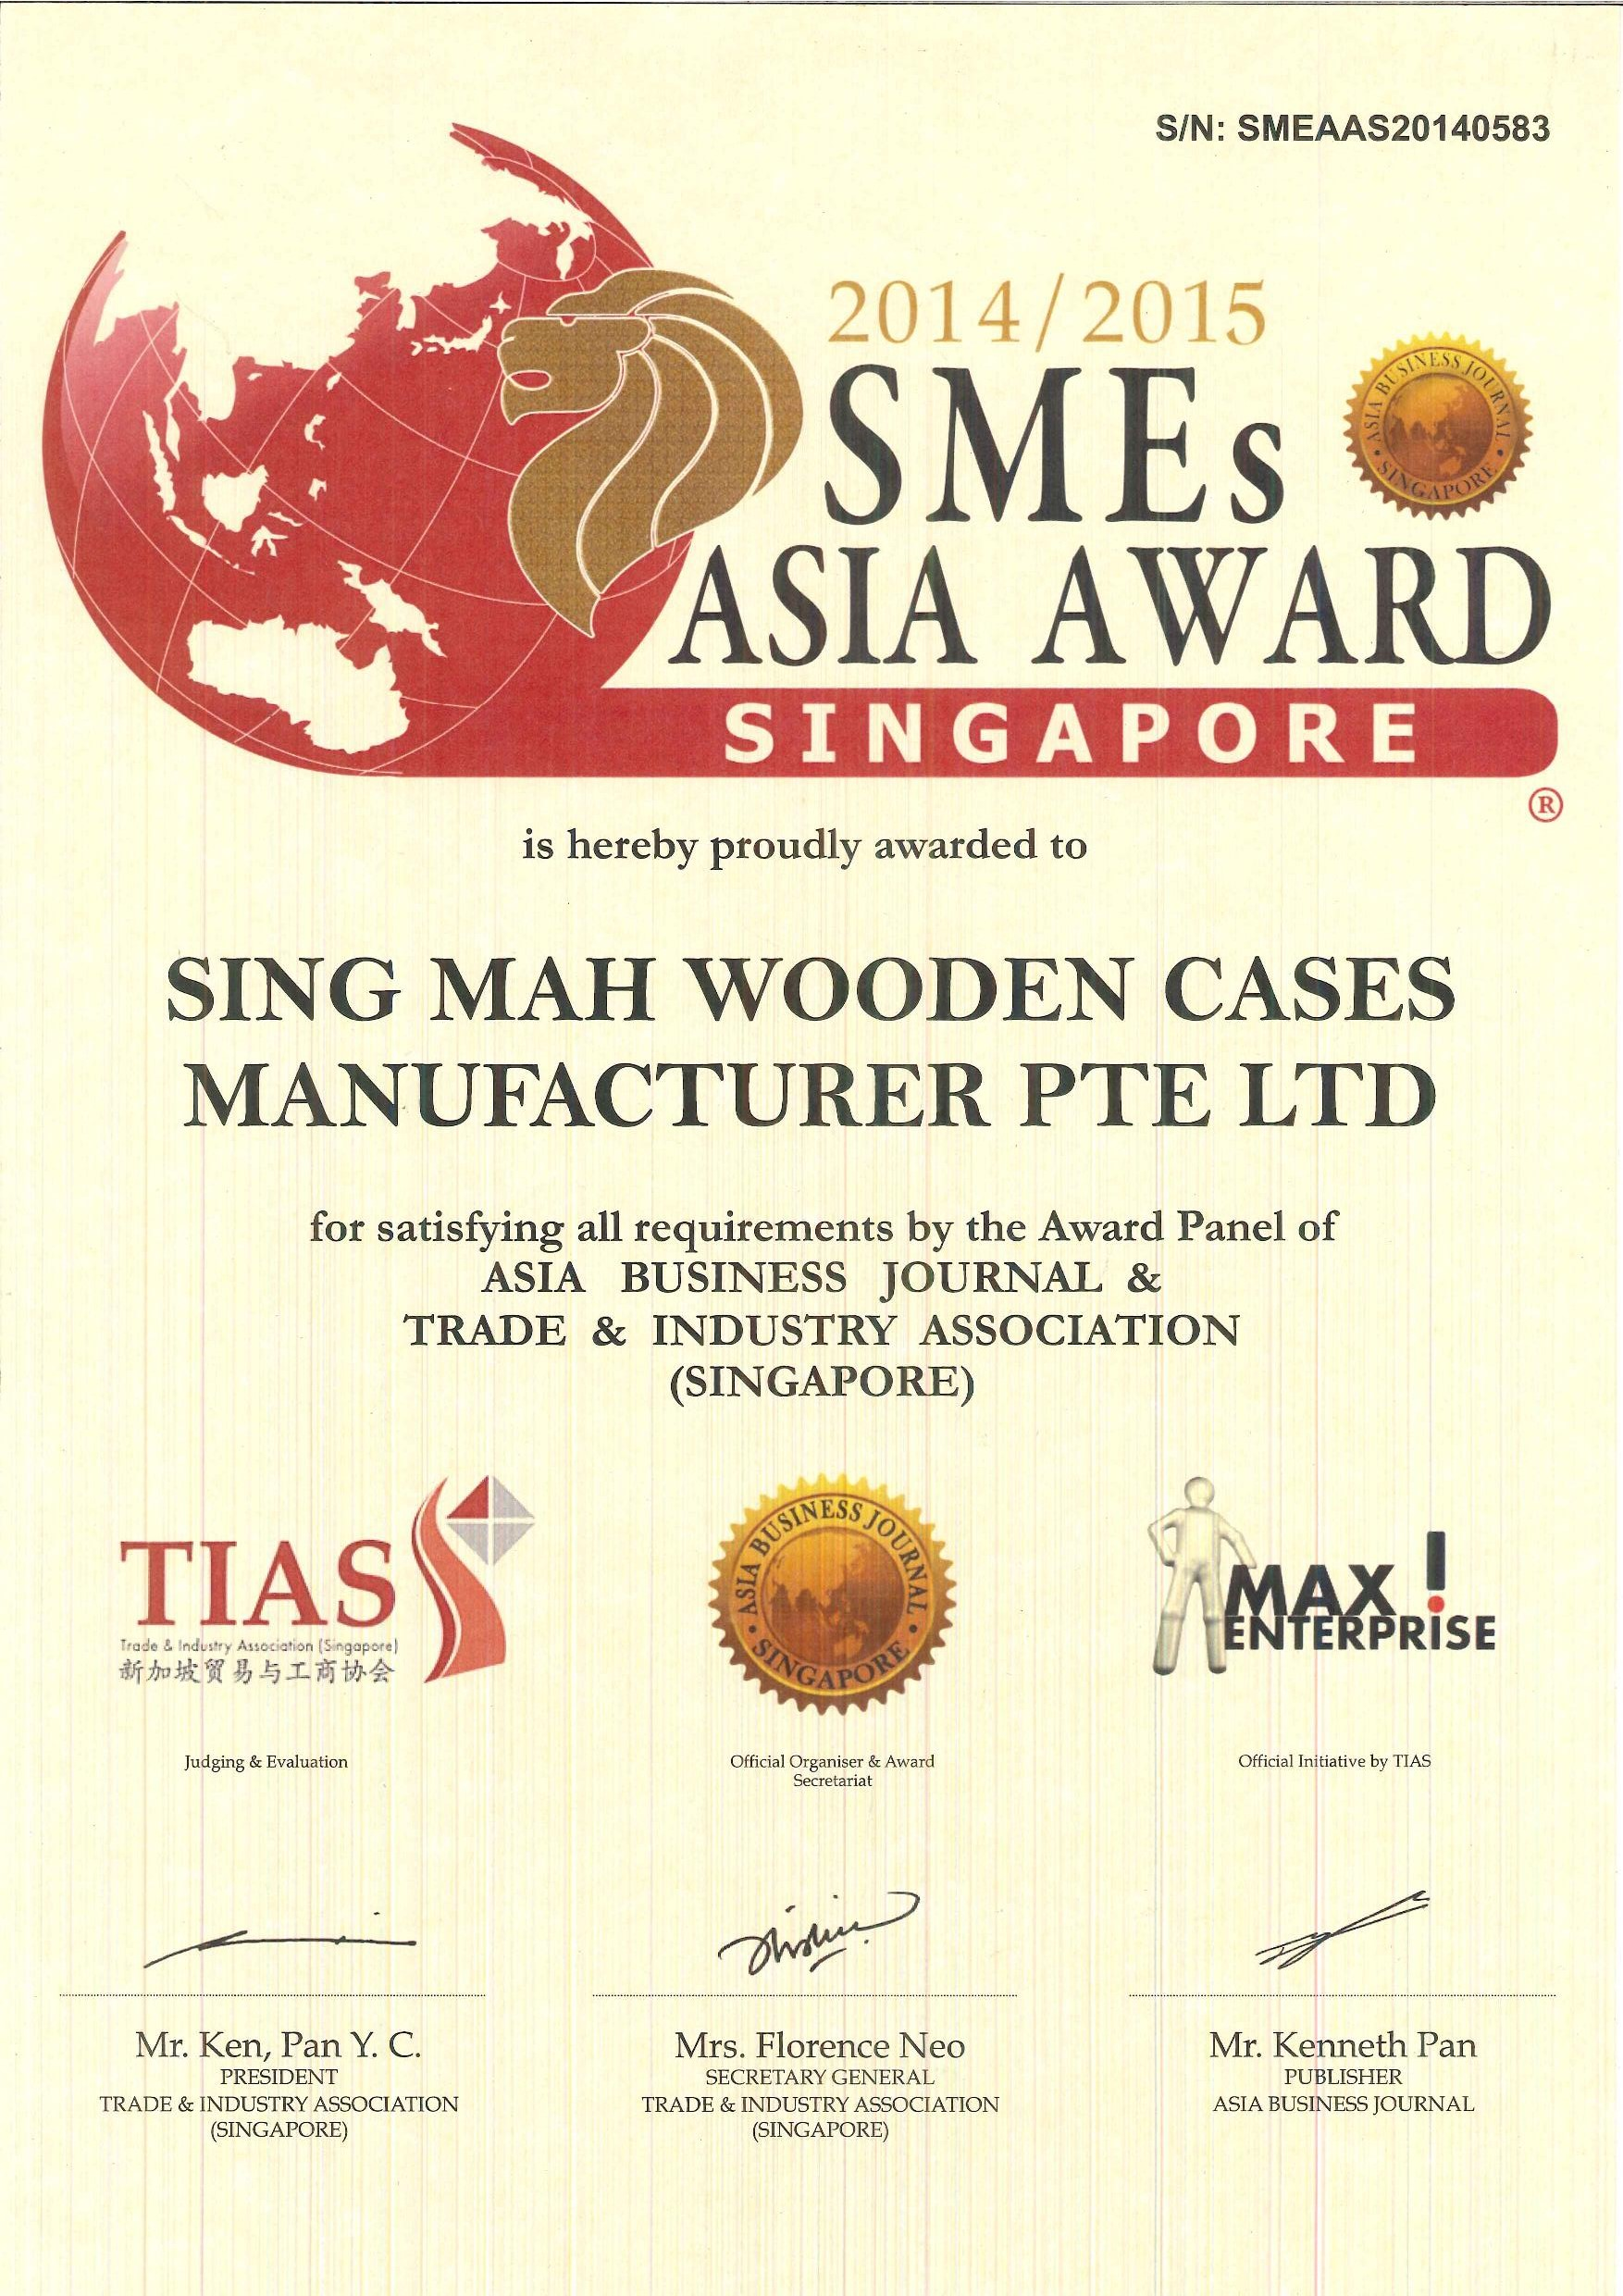 Sing Mah Wooden Cases Manufacturer Pte Ltd